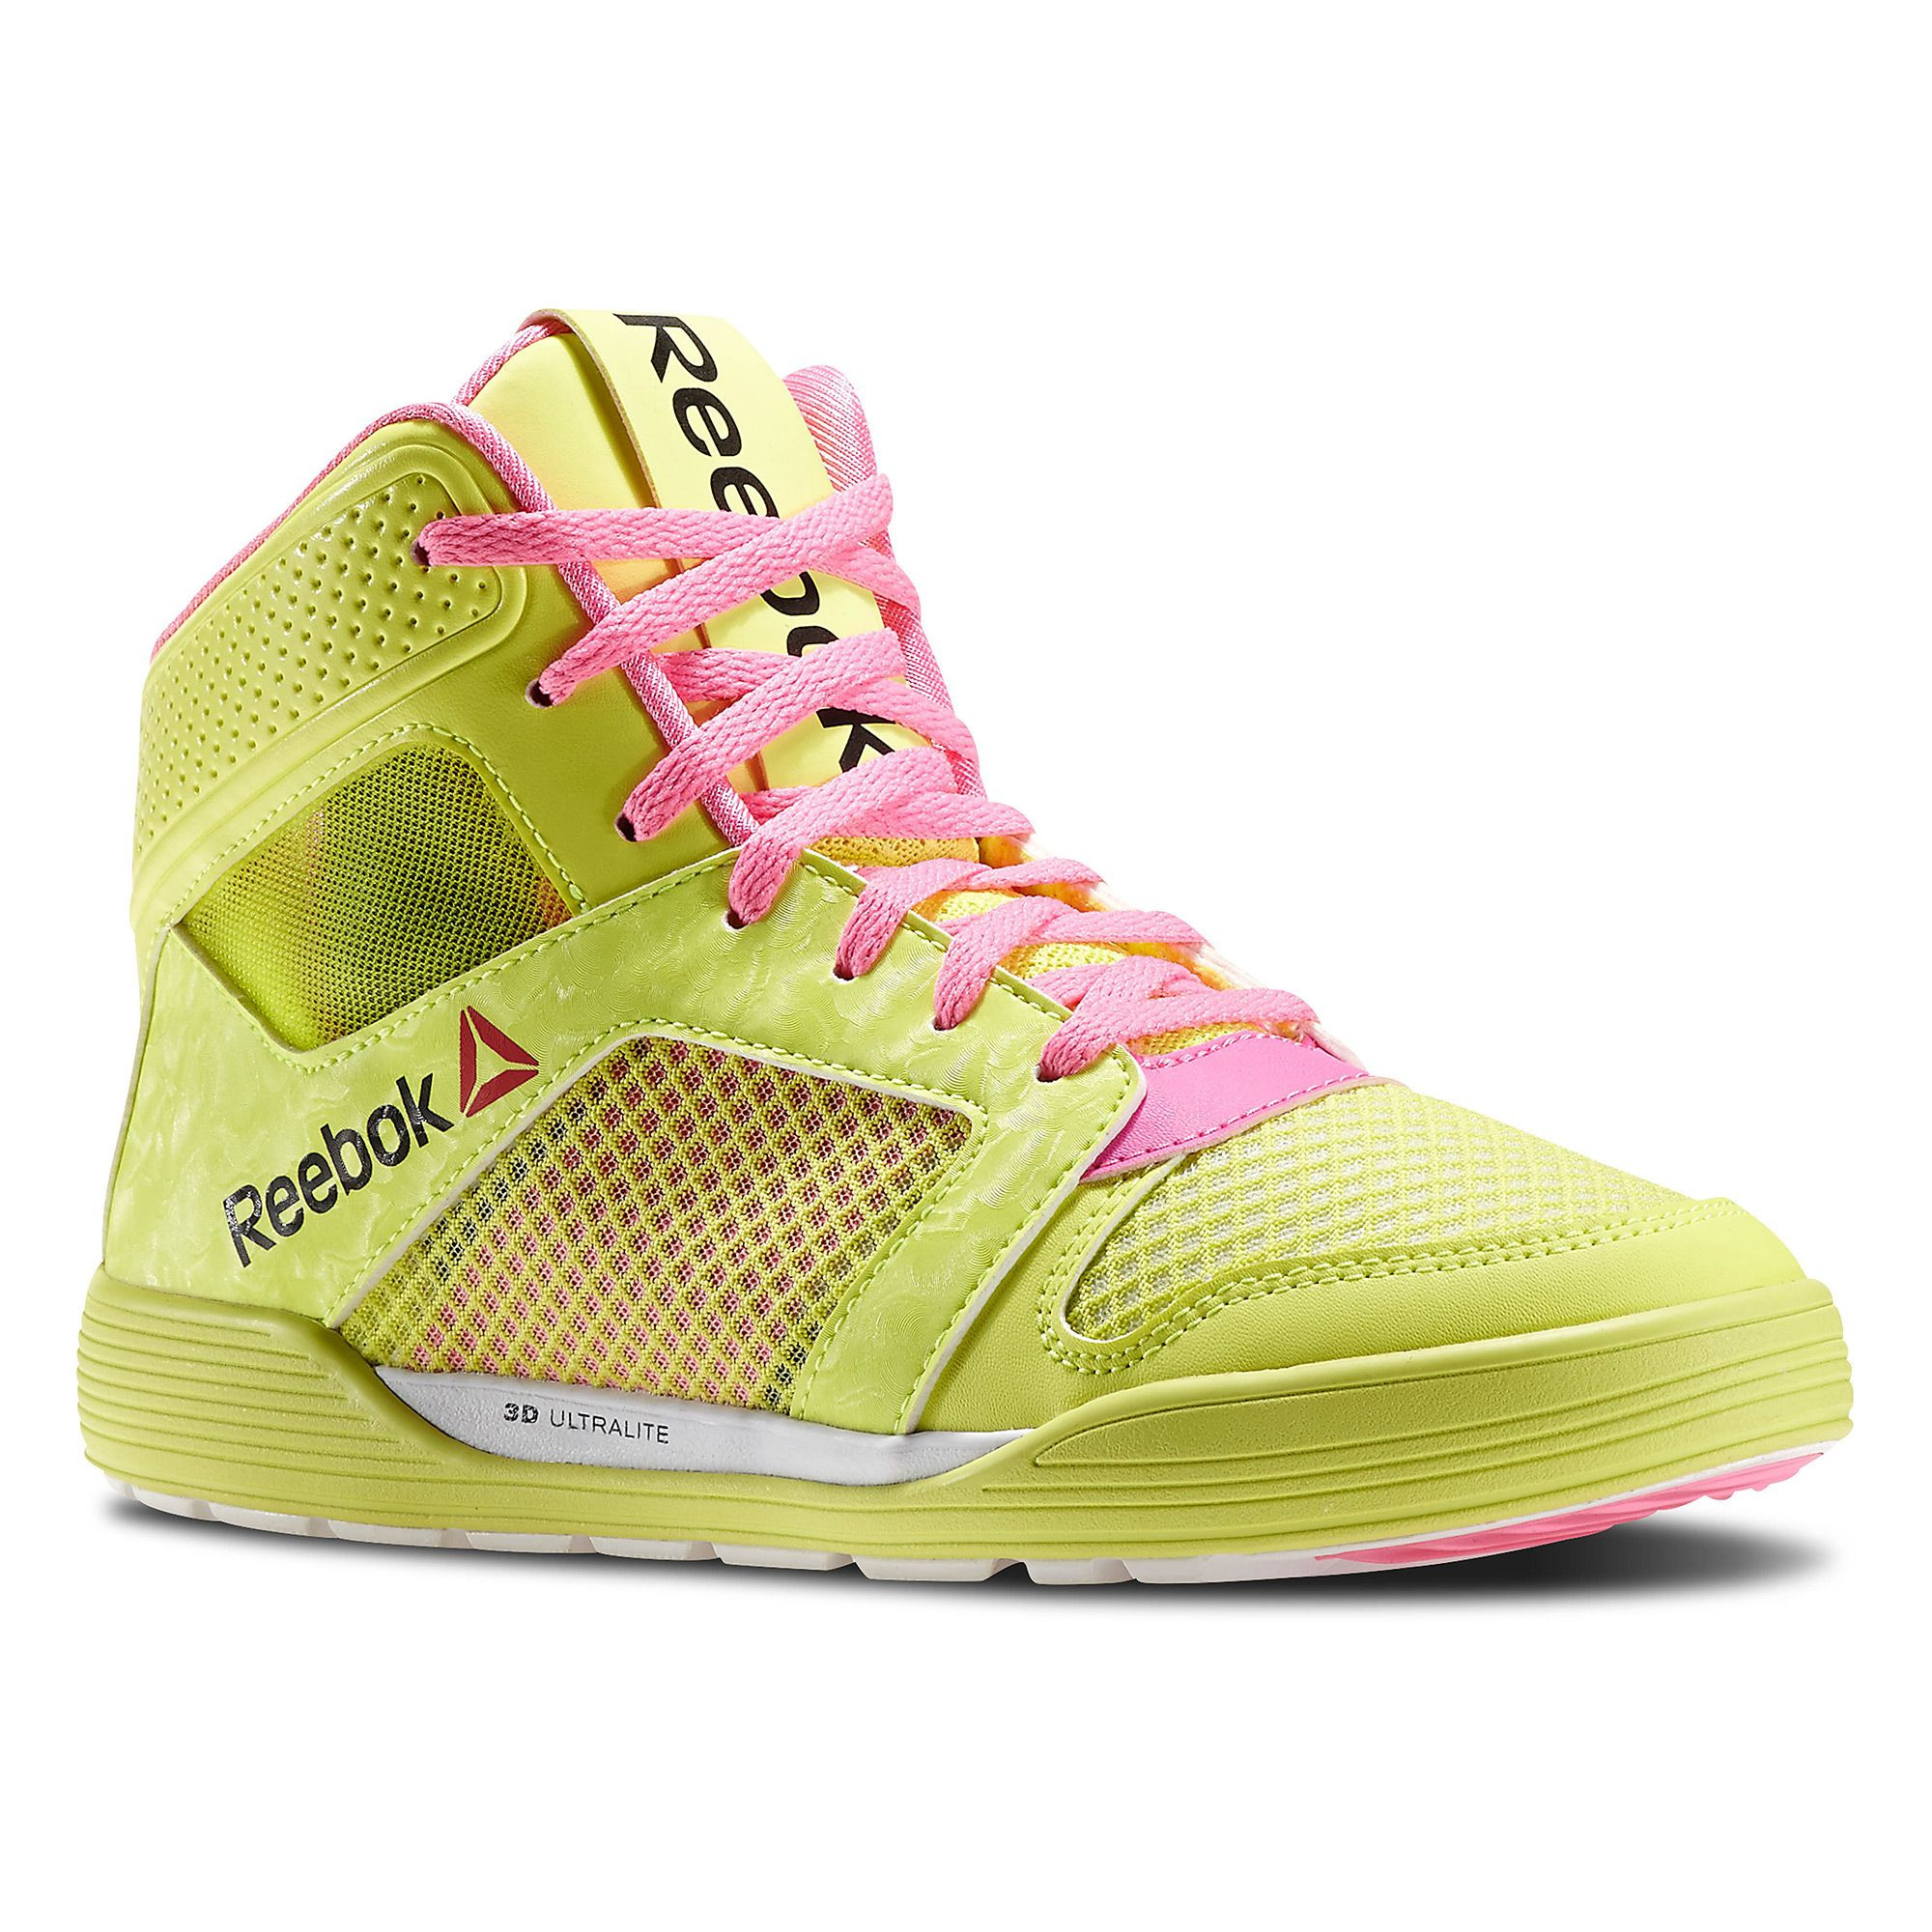 Reebok-running-shoes-and-sportsshoes-for-women (12)